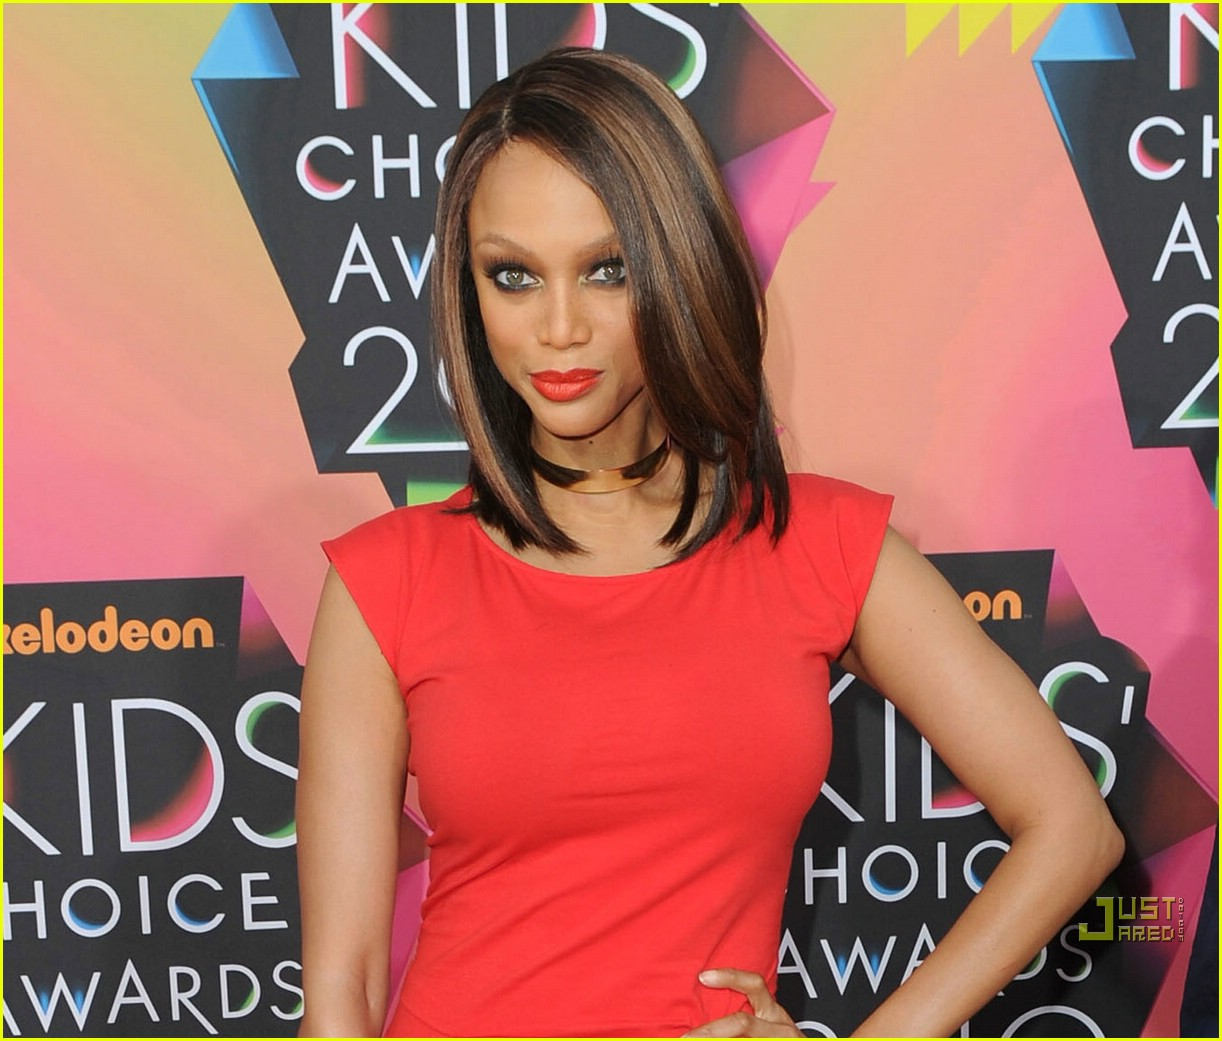 Tyra Banks Awards: Tyra Banks - 2010 Kids Choice Awards: Photo 2437905